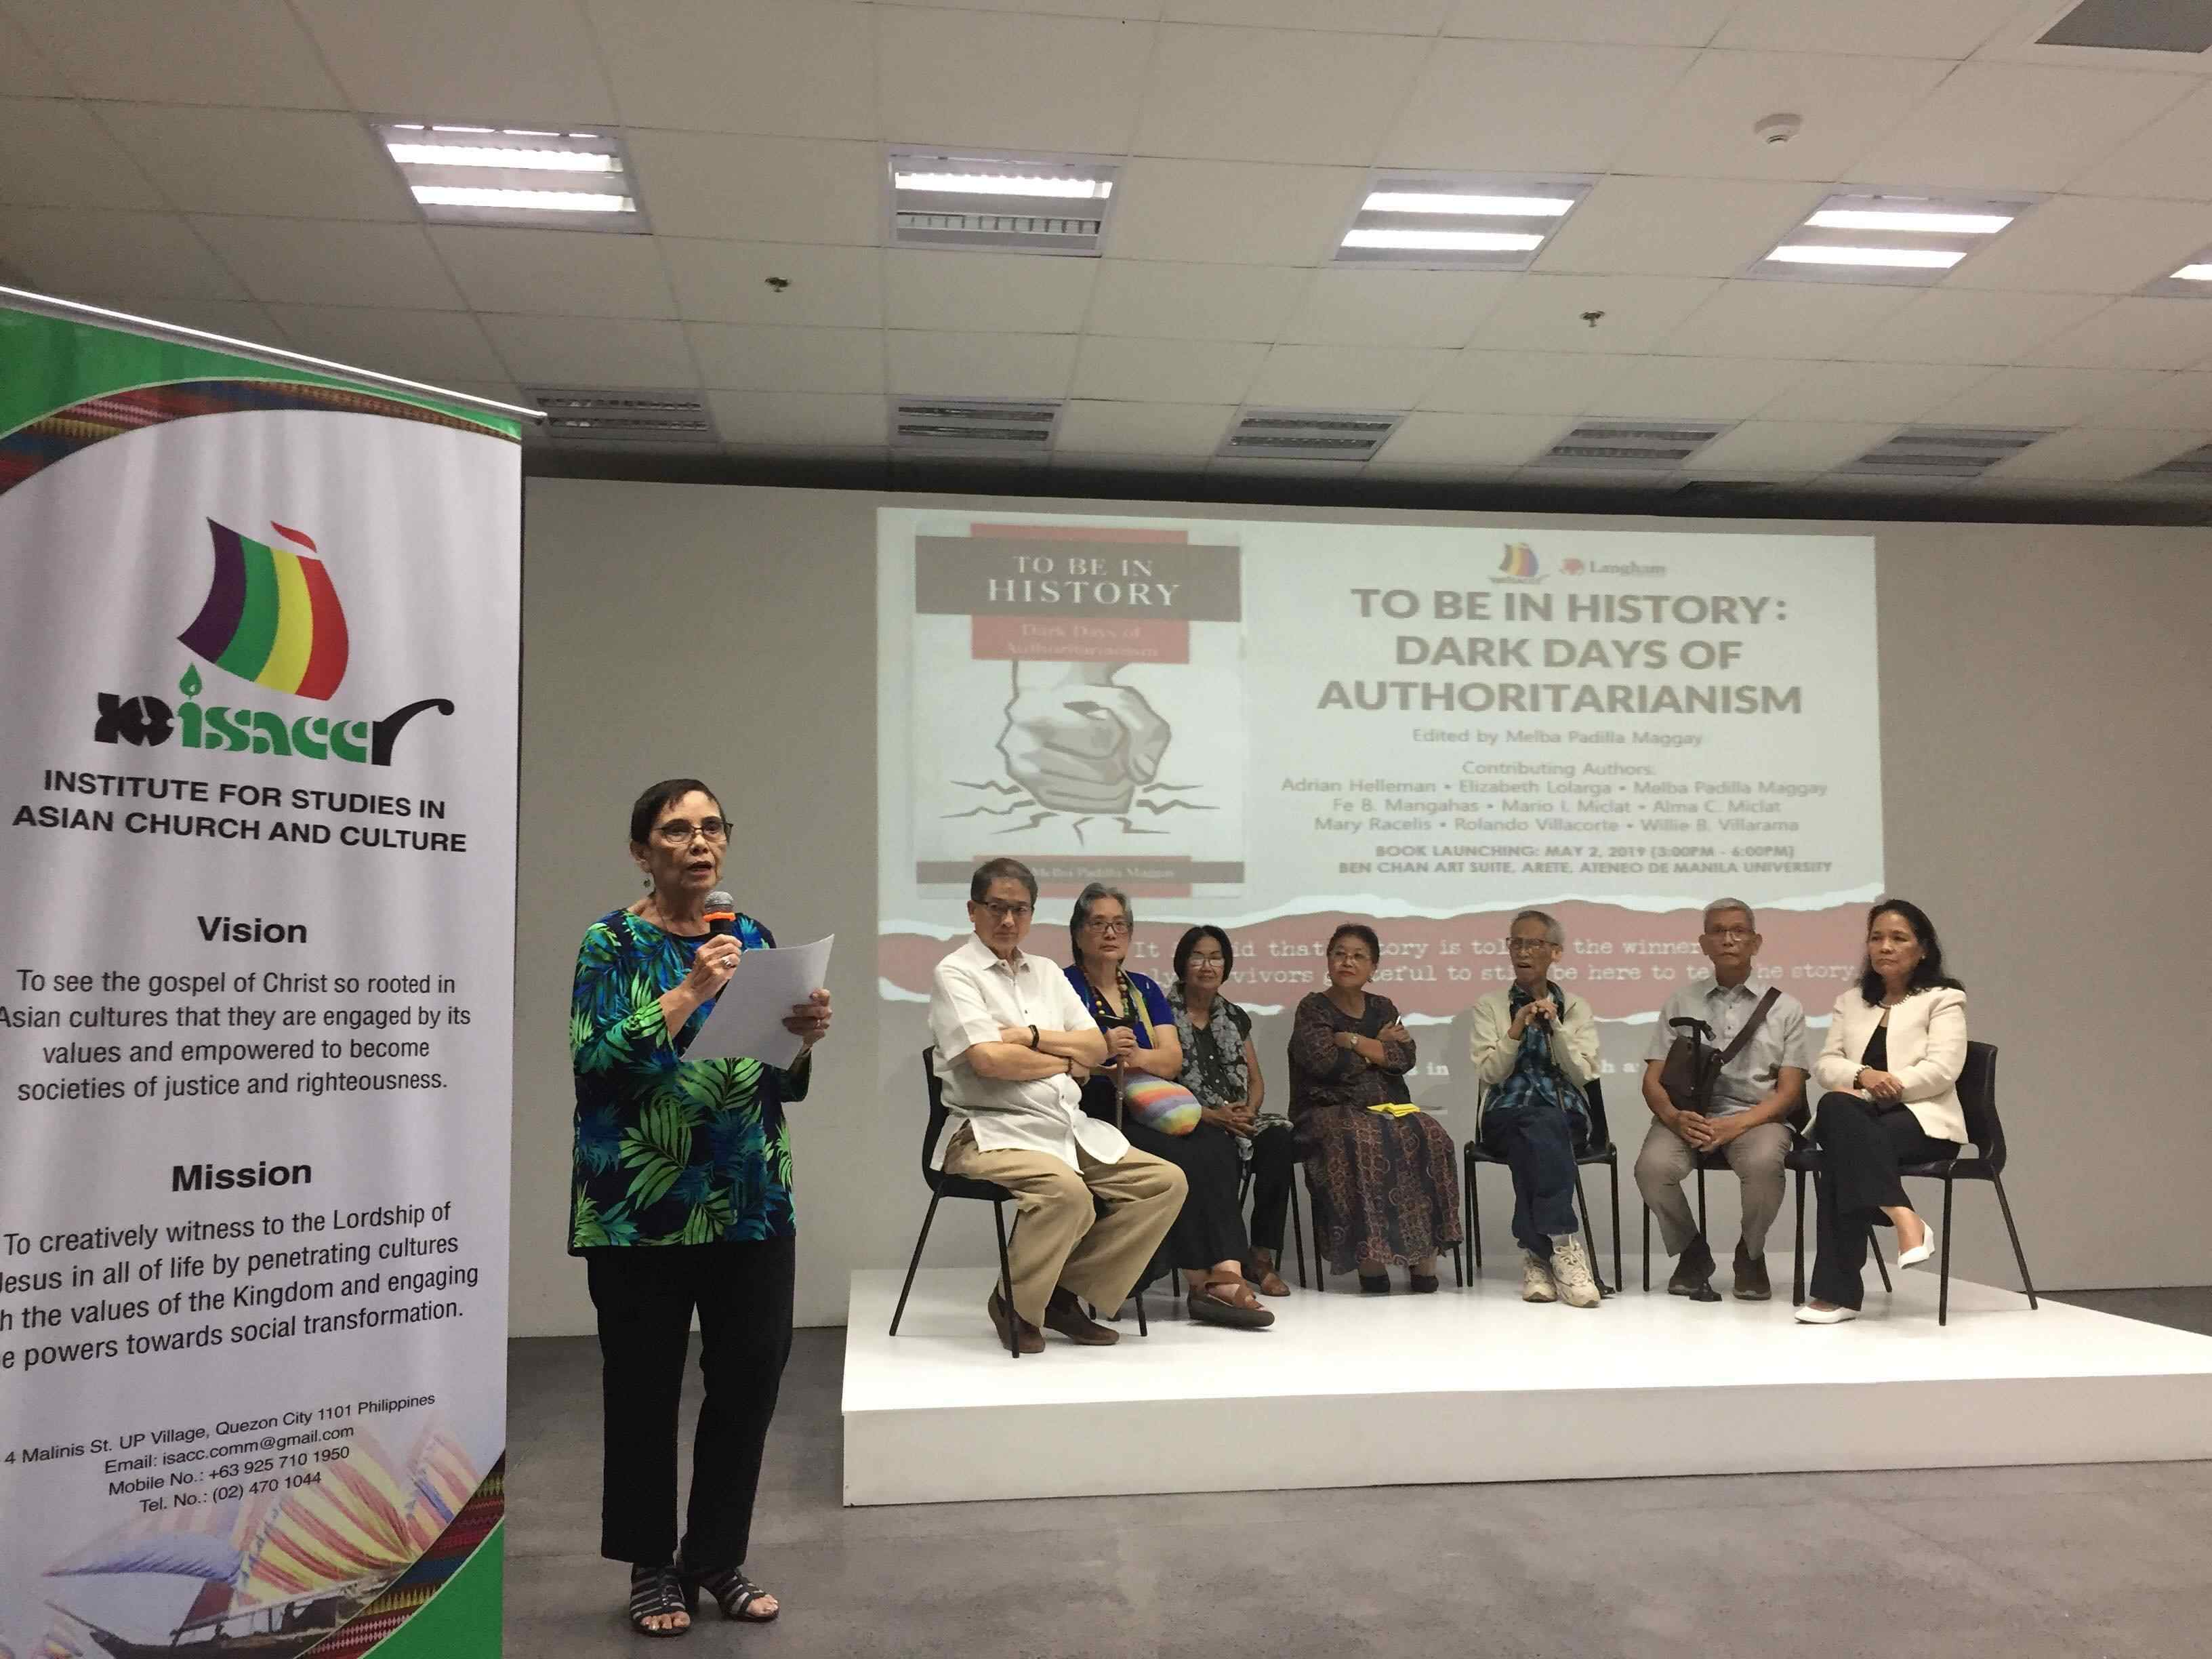 UNITED. Mary Racelis, one of the contributors of the book, responds to the audience in behalf of all the authors seated on the platform during the launch of ''To Be in History: Dark Days of Authoritarianism' on May 2, 2019. Photo by Maria Gabriela Aquino/Rappler